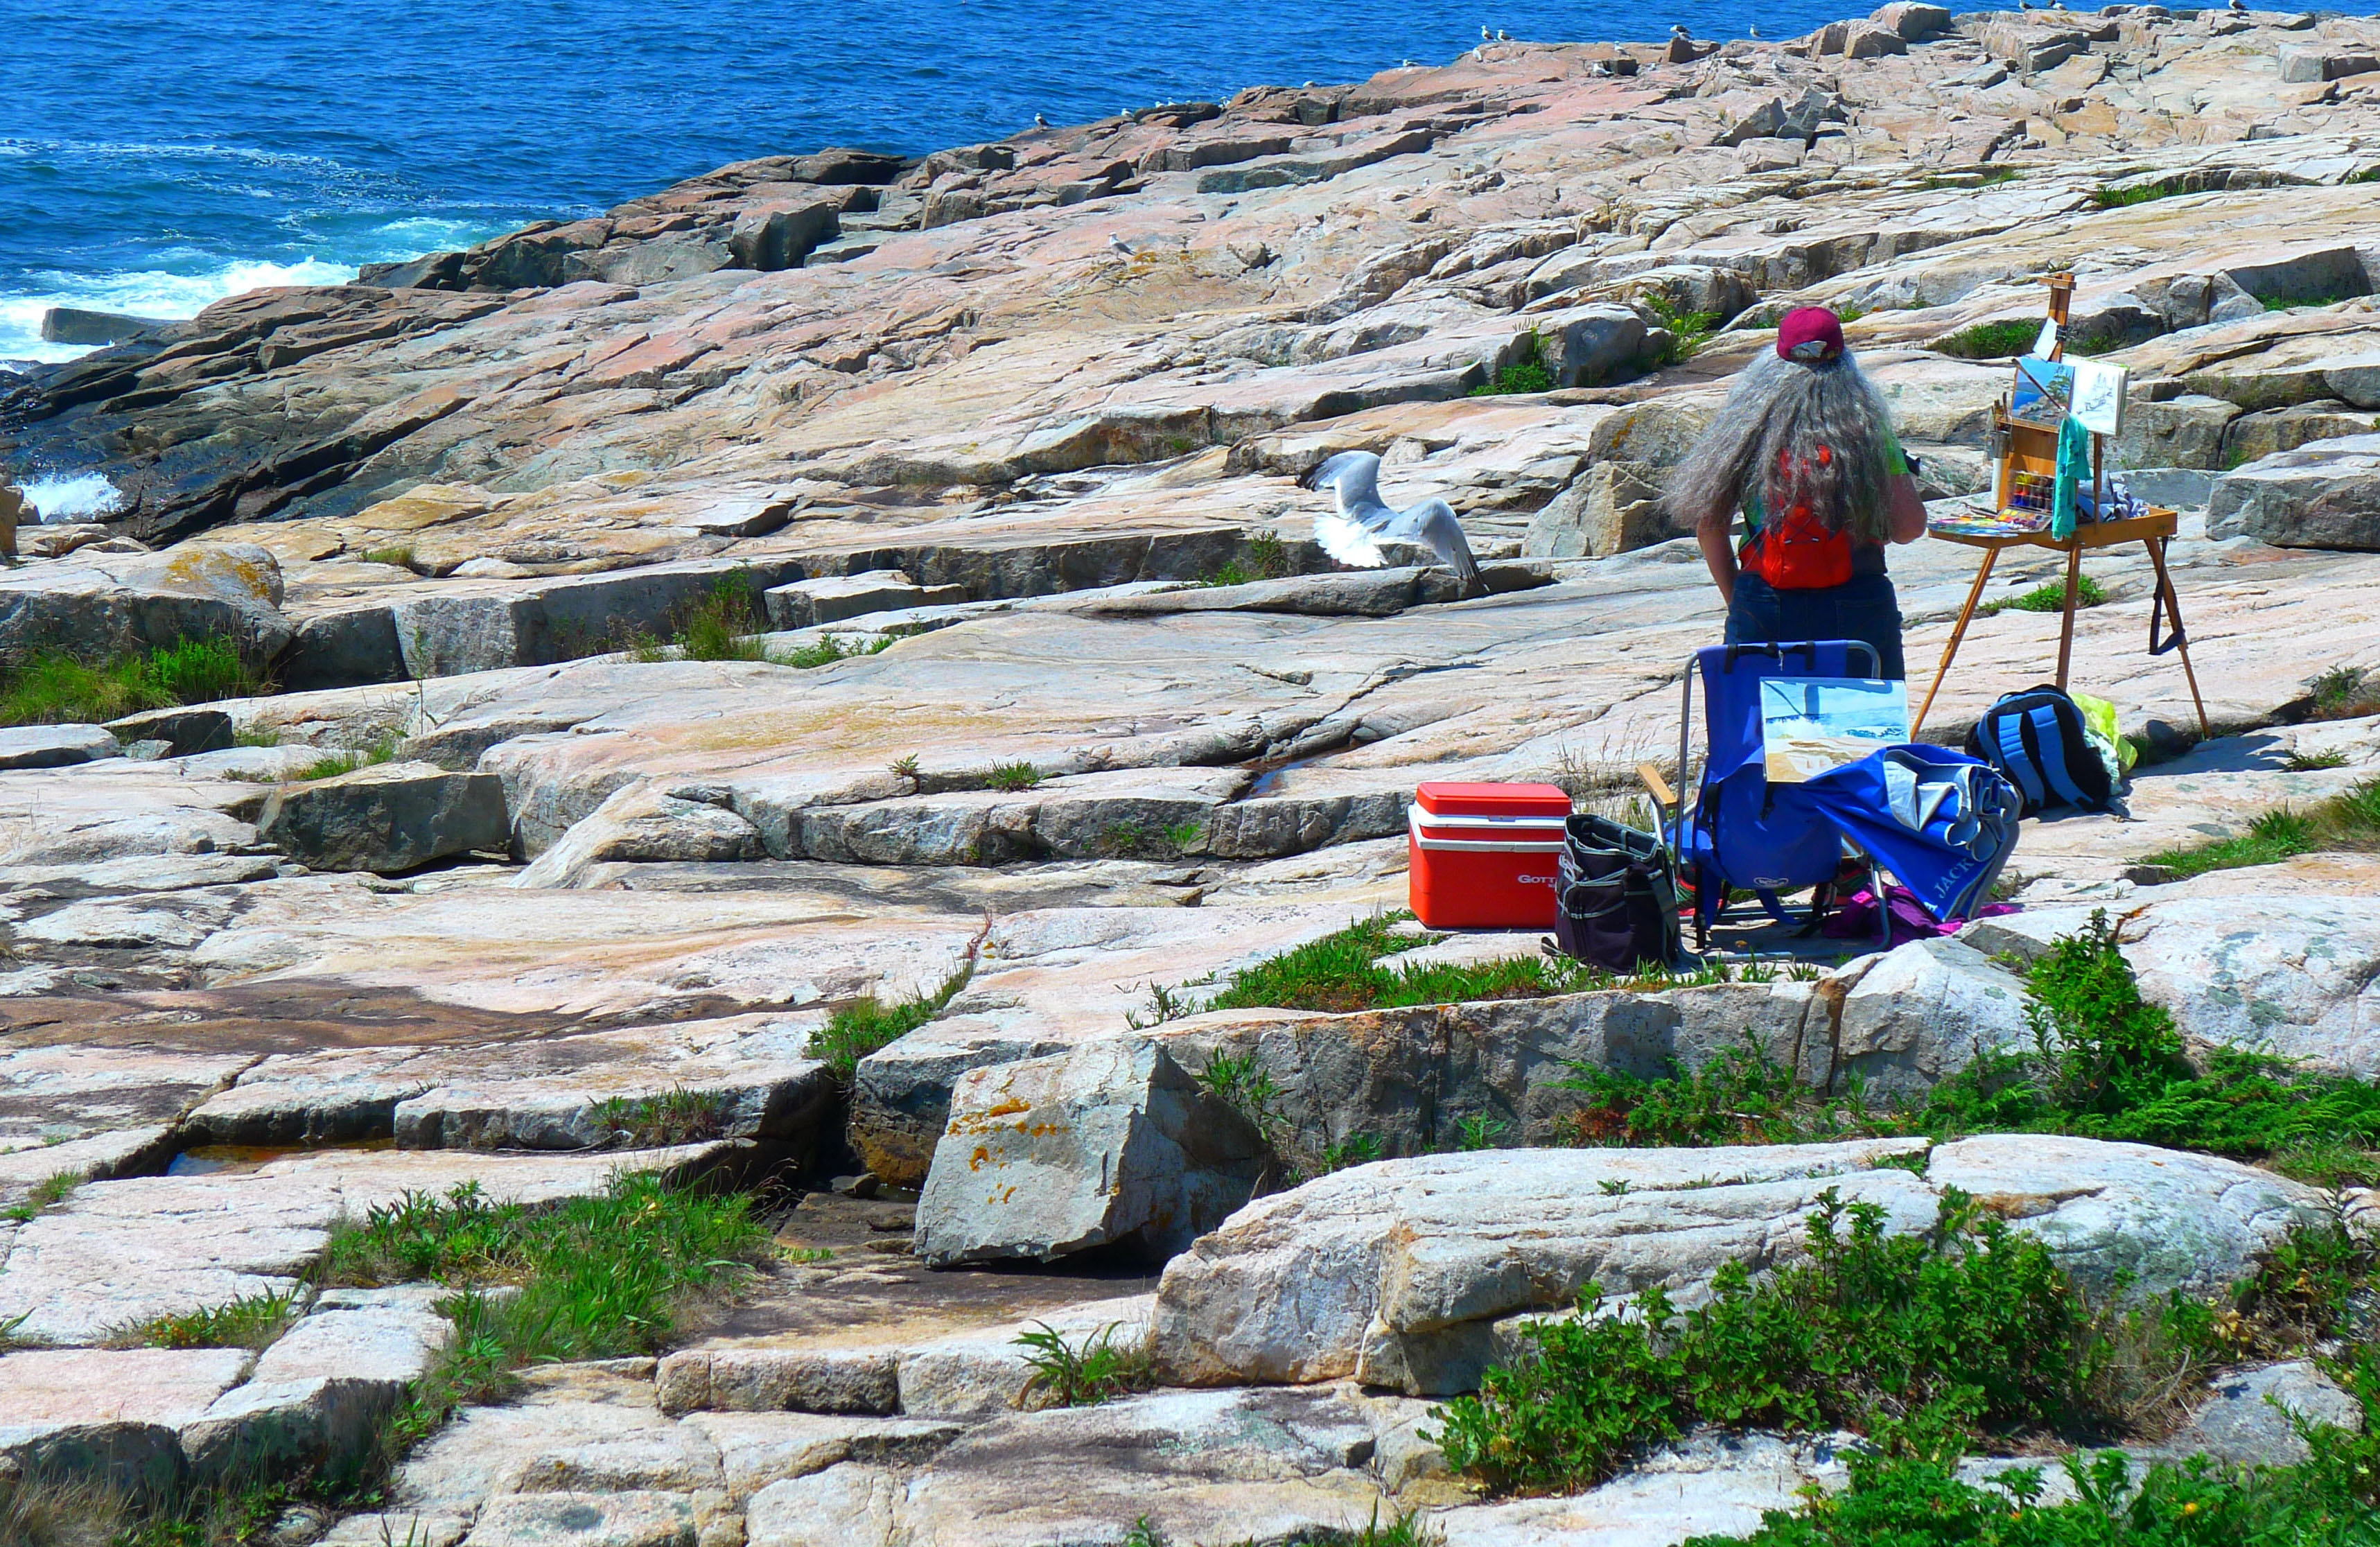 Far from the hustle and bustle of Bar Harbor, Schoodic Peninsula has dramatic rock formations, windblown pines, pounding surf and stunning mountain views that draw visitors from around the world.